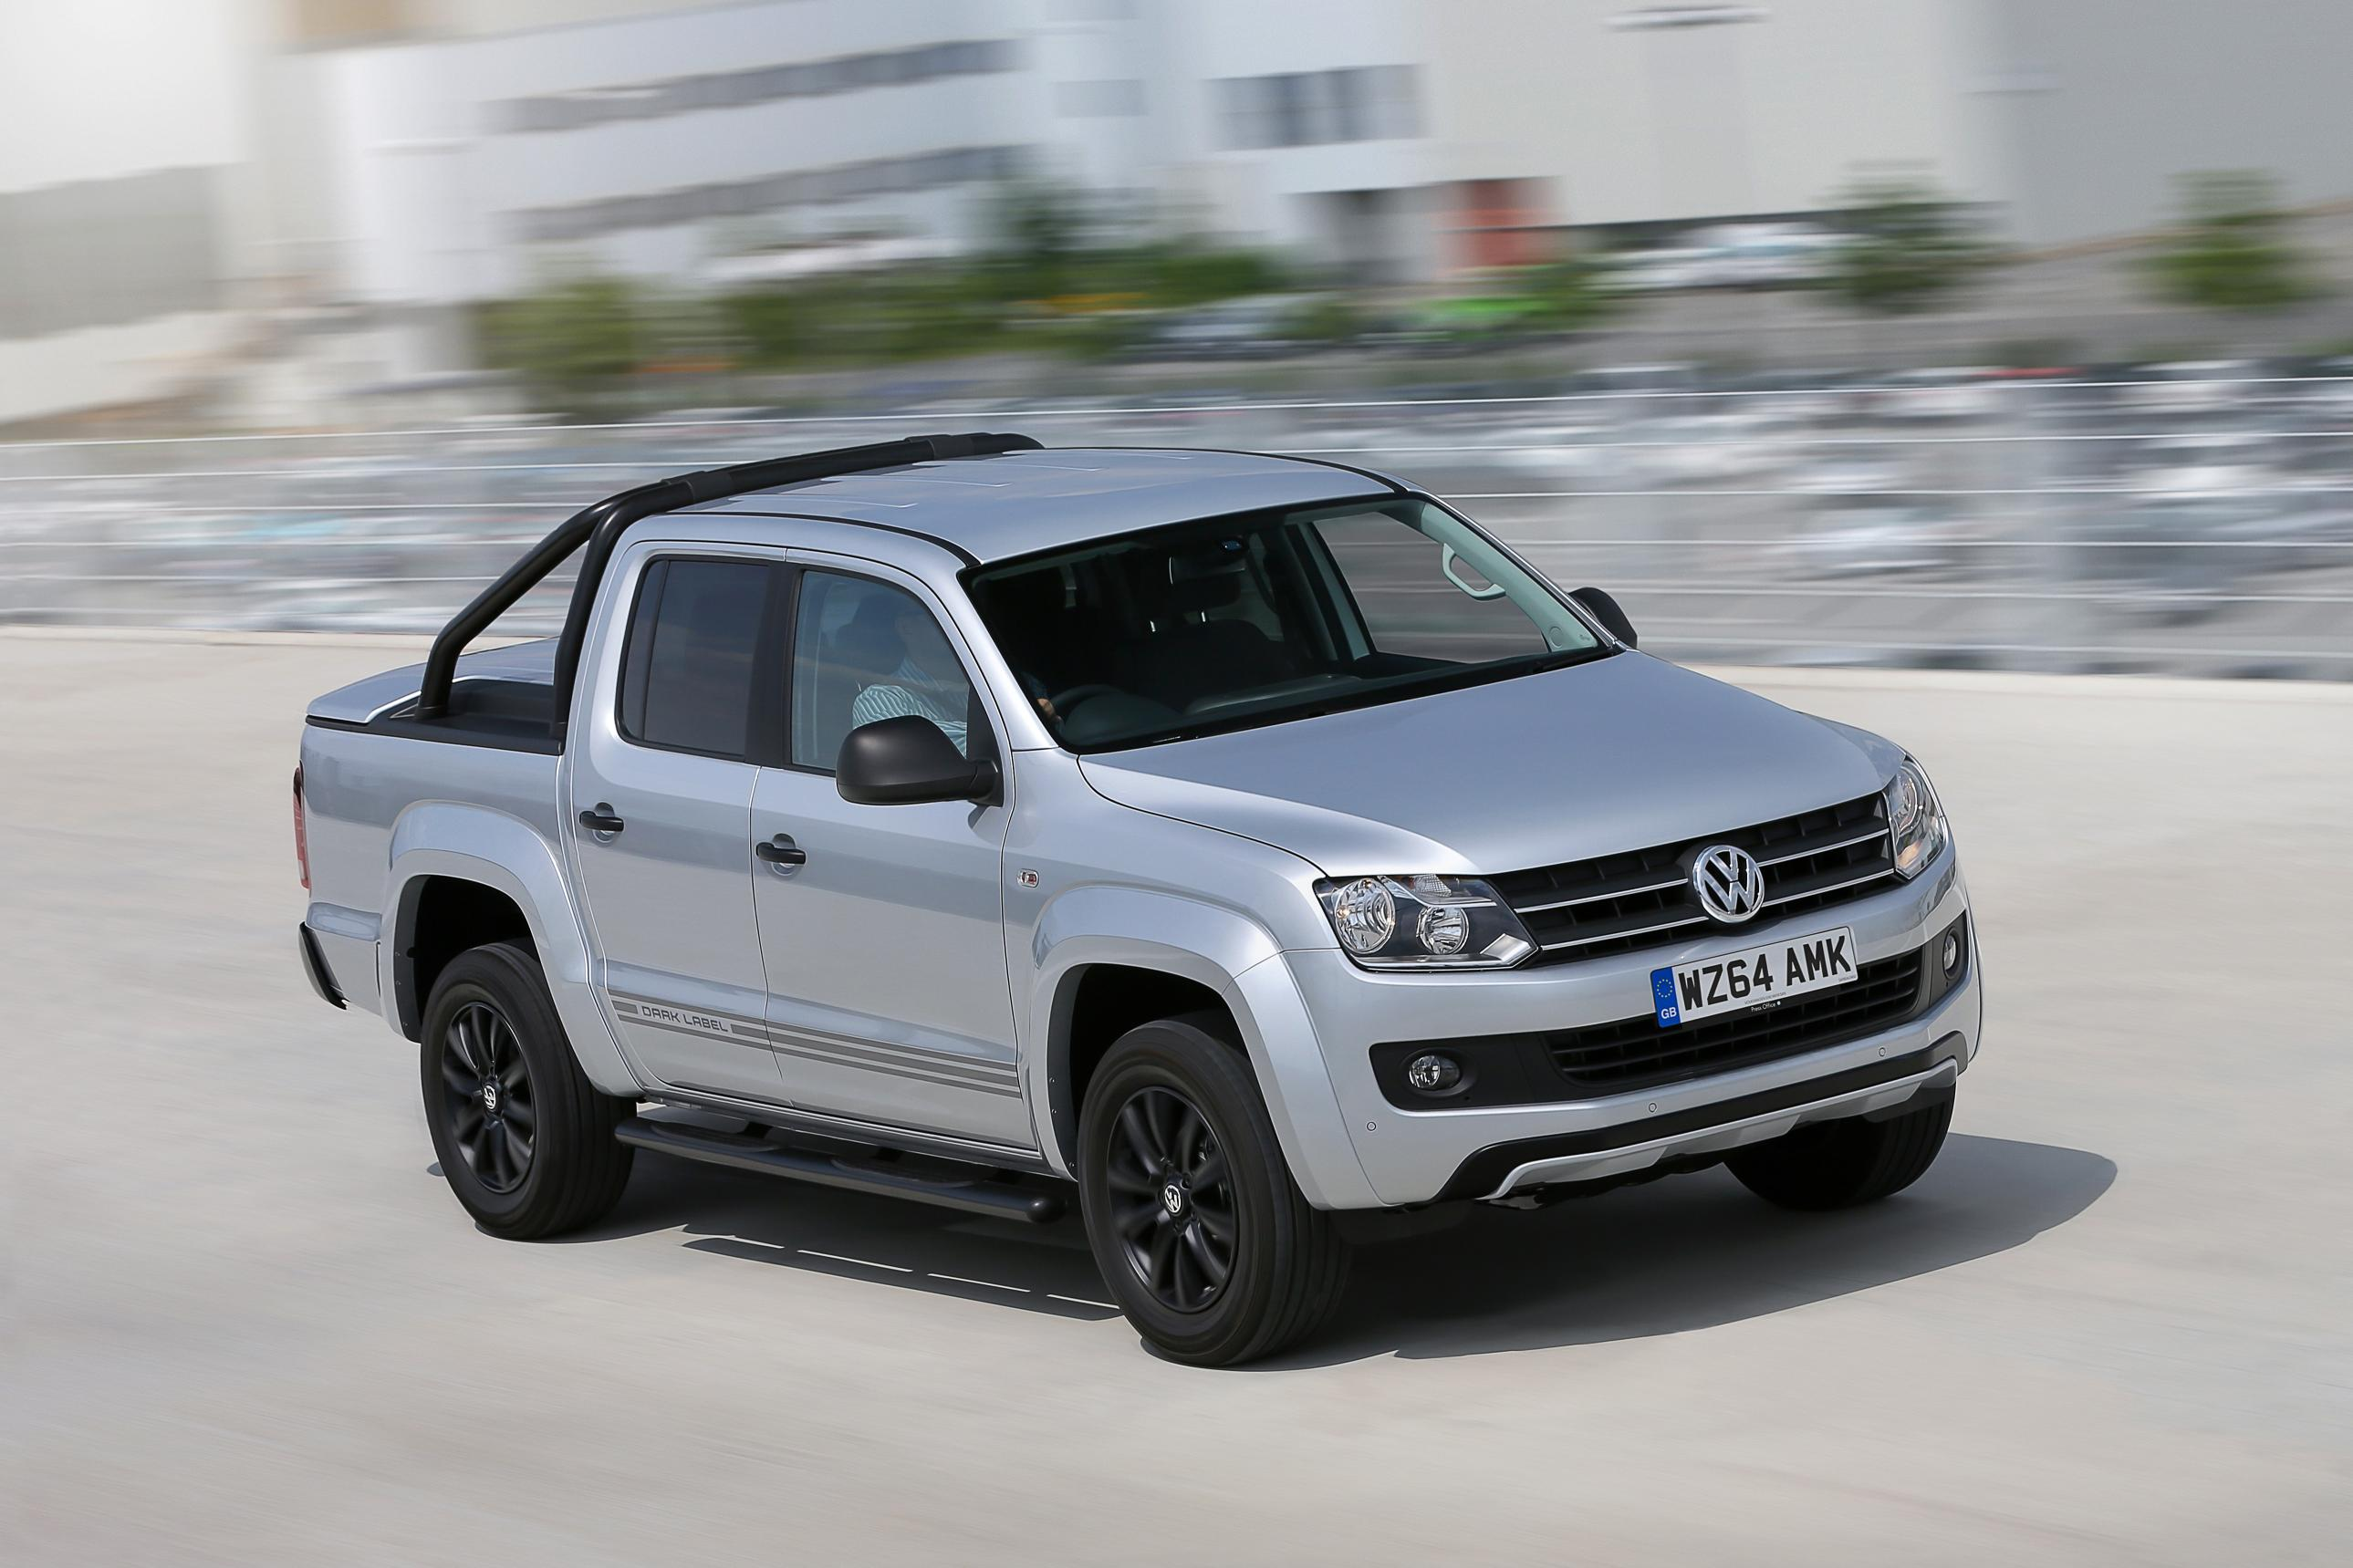 Фото | Пикап Volkswagen Amarok Dark Label. 2014 год